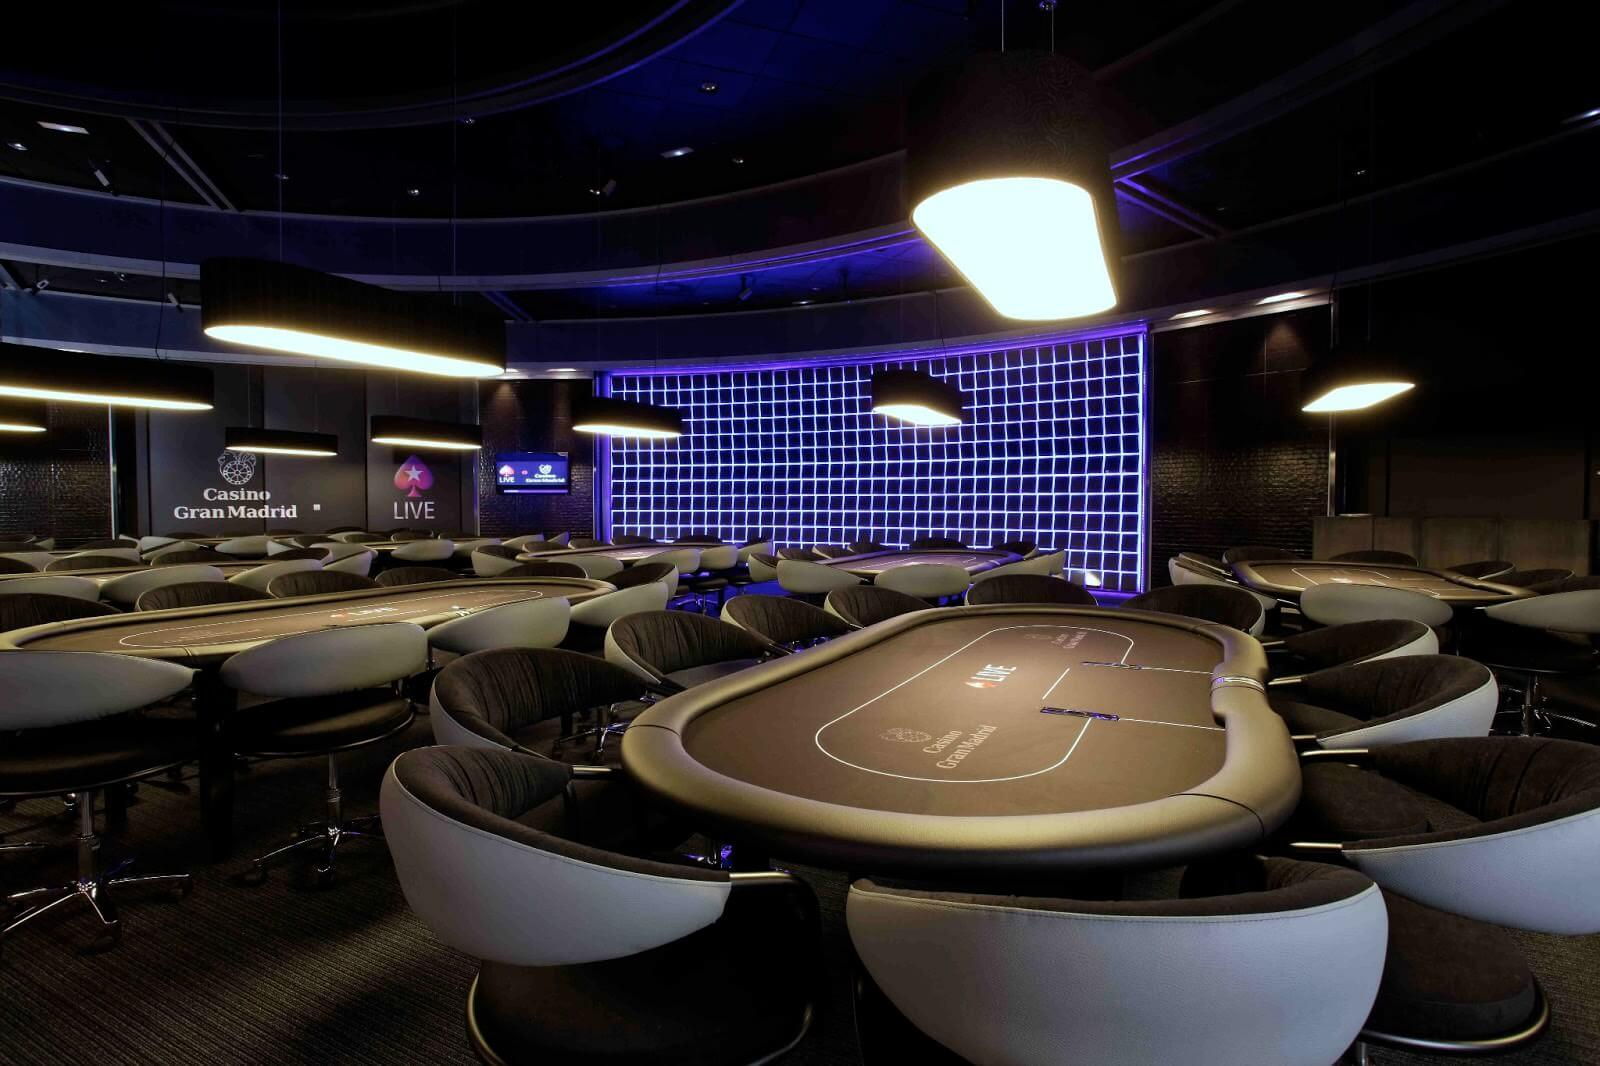 Casino Gran Madrid Torrelodones in Spain